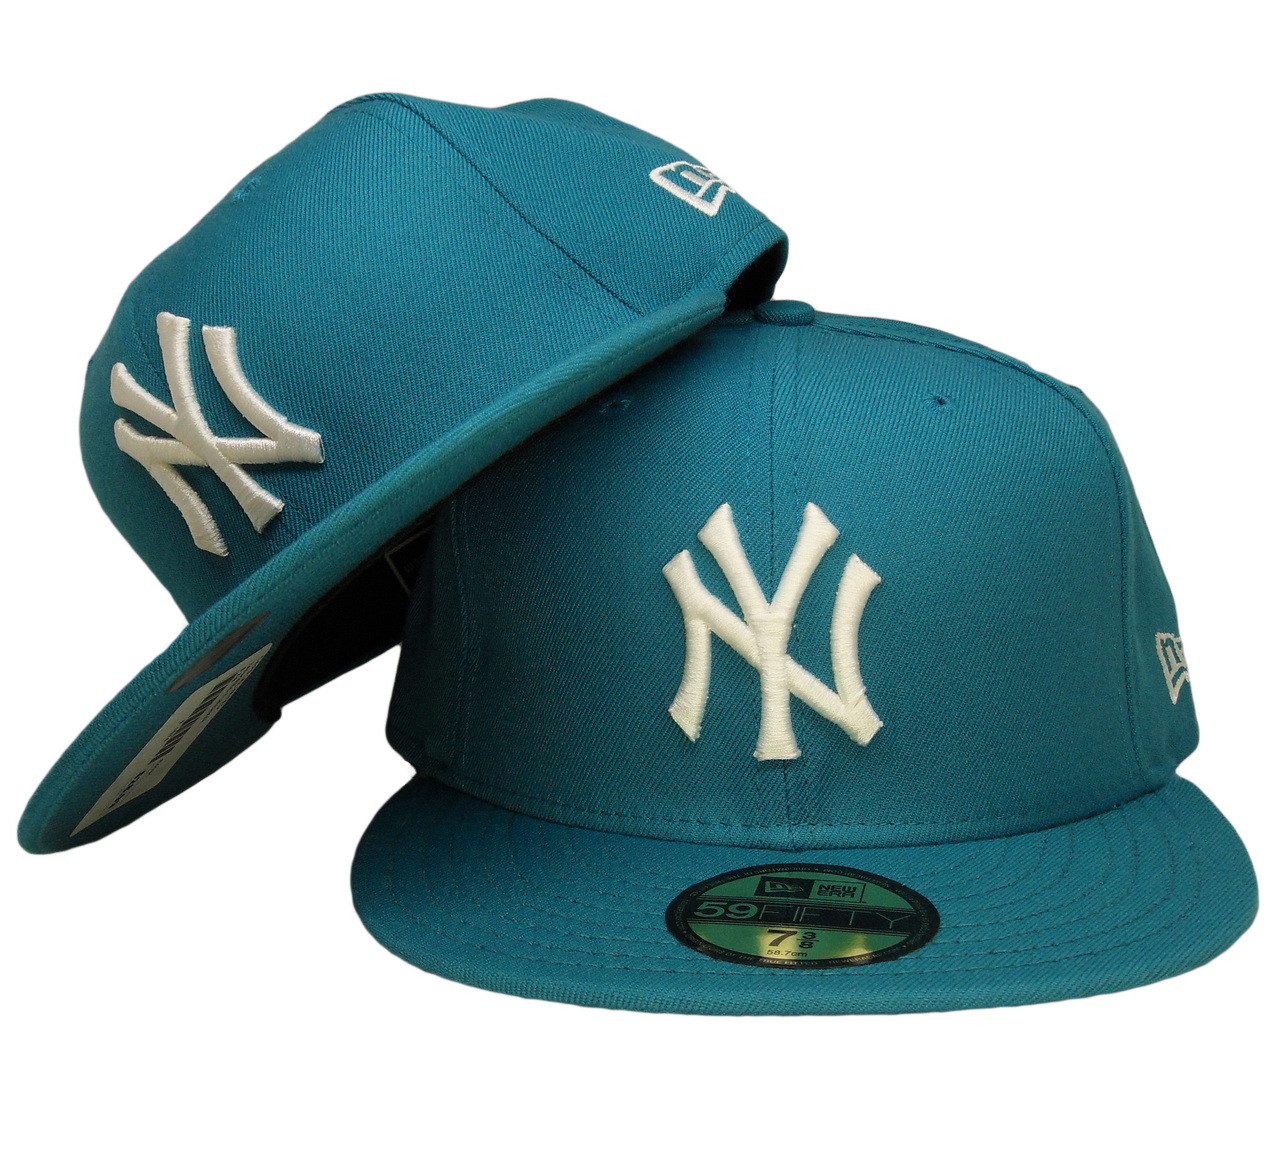 New York Yankees New Era 59Fifty Basic Fitted Hat - Turquoise a951e547b57